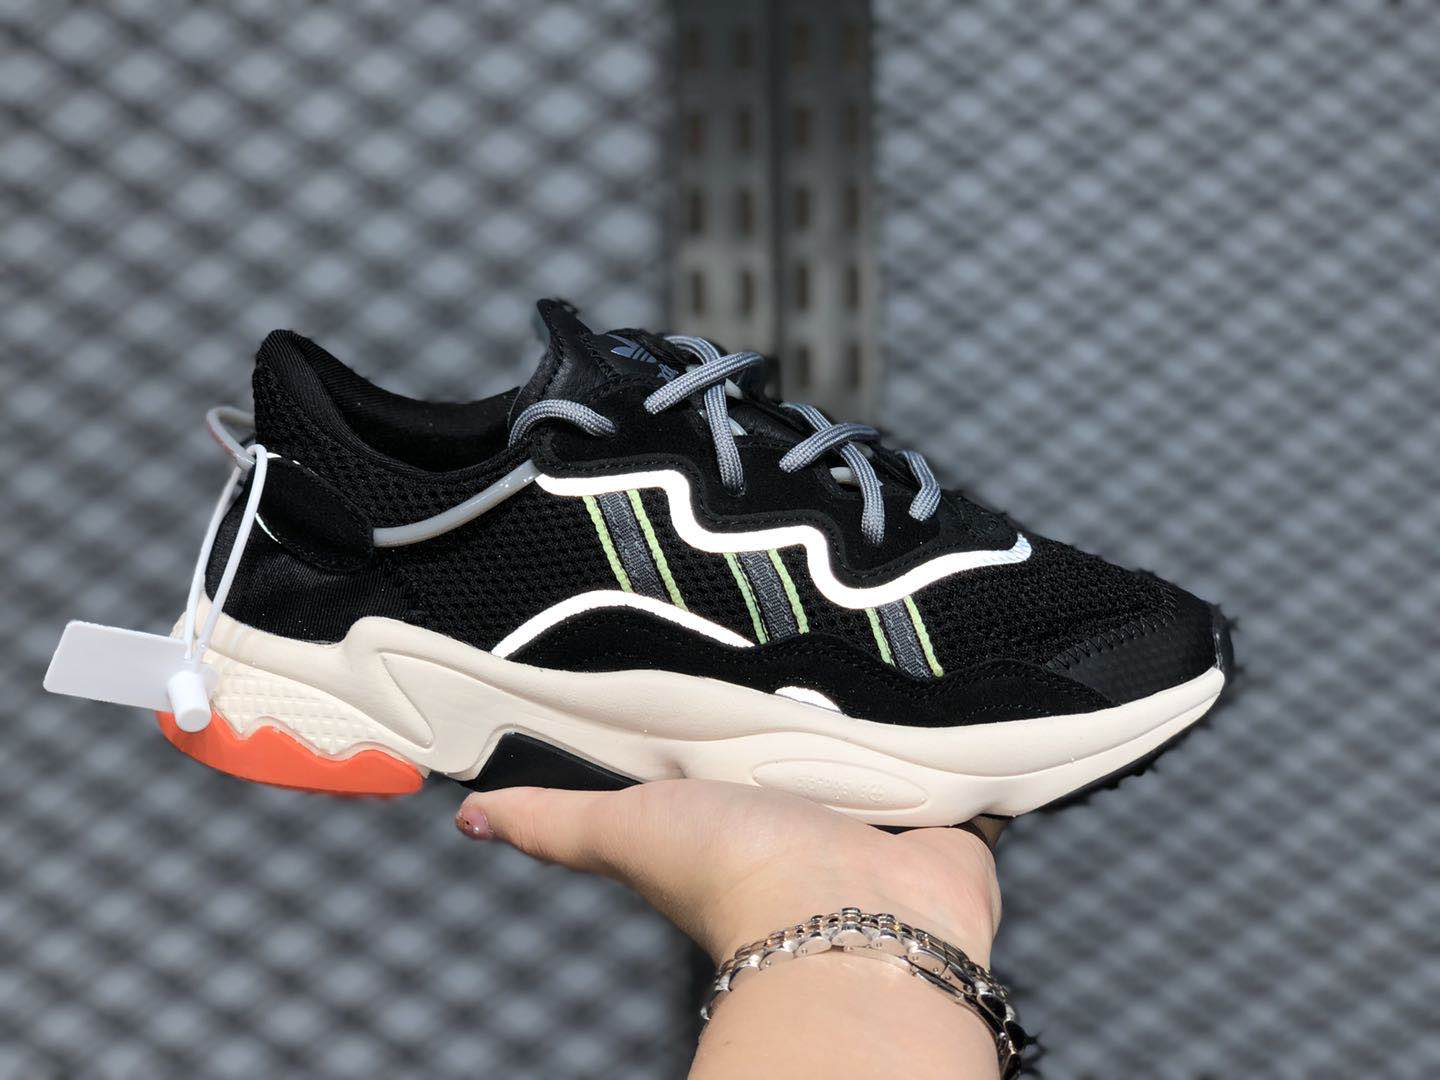 Adidas Ozweego Core Black/Solar Green-Grey-White EE5088 For Sale